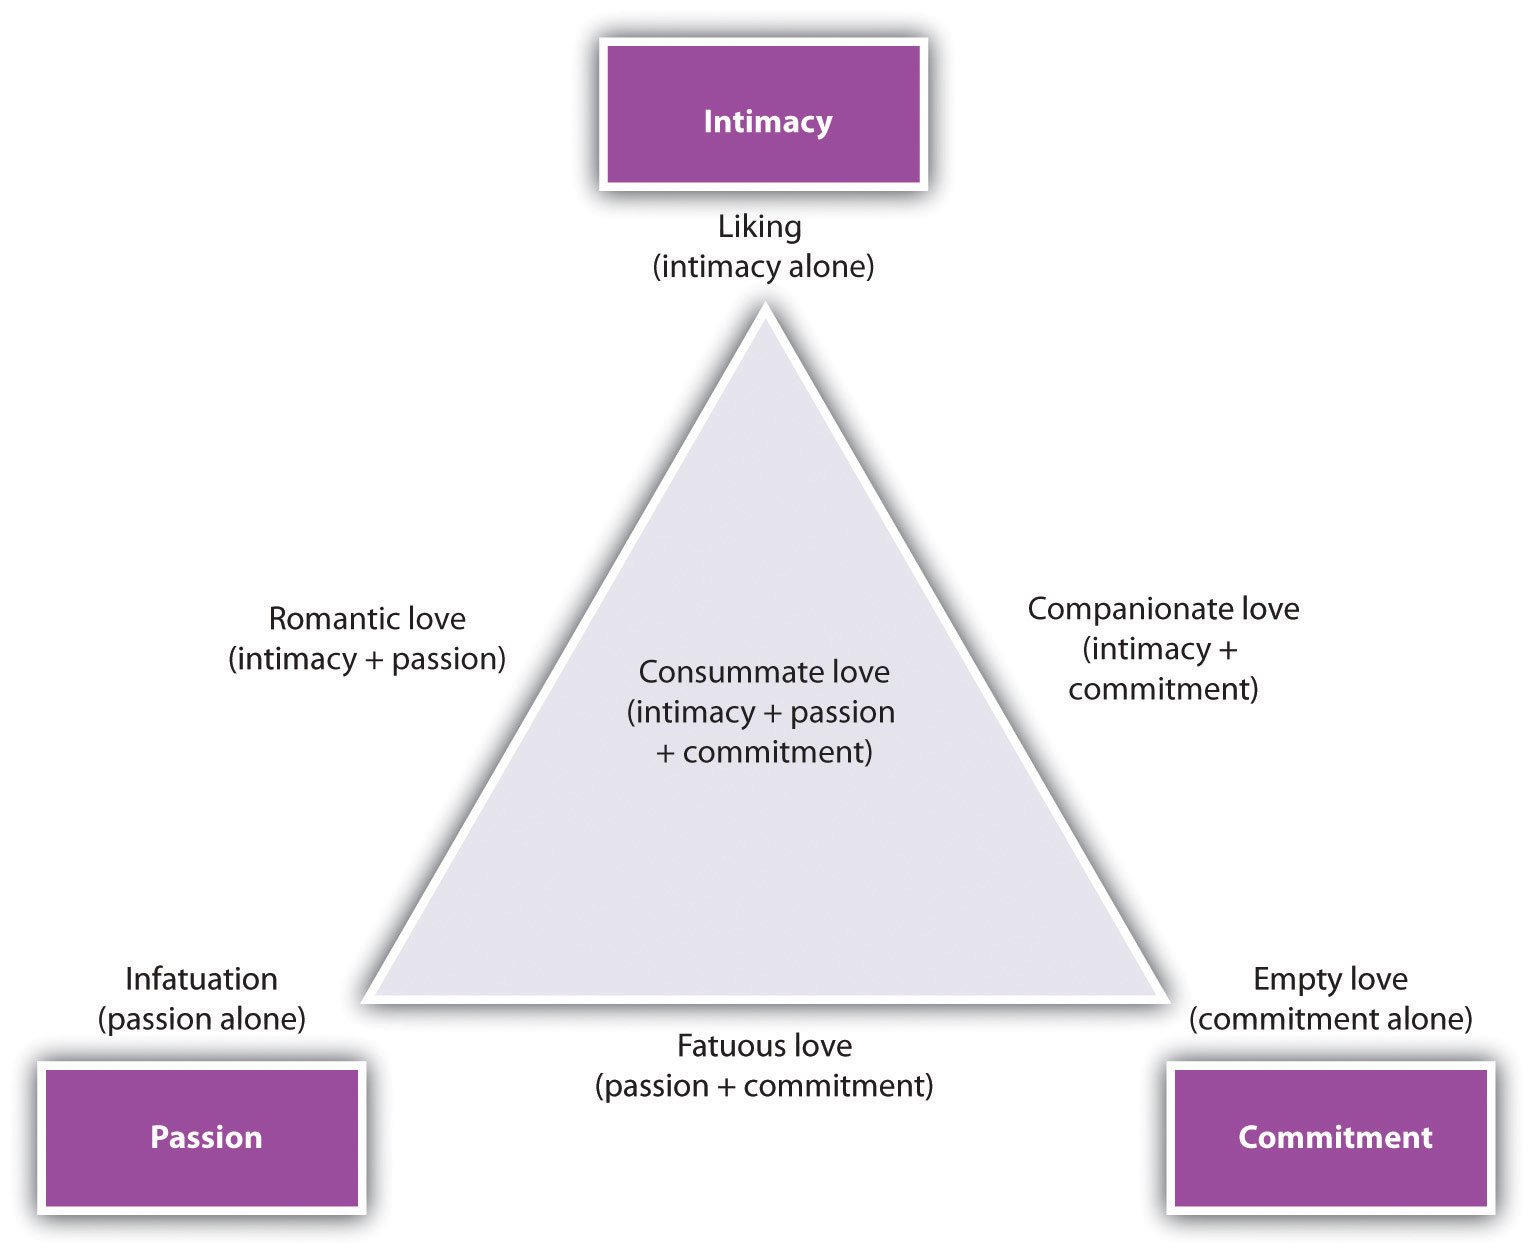 The triangular model of love, proposed by Robert Sternberg. Note that there are seven types of love, which are defined by the combinations of the underlying factors of intimacy, passion, and commitment.